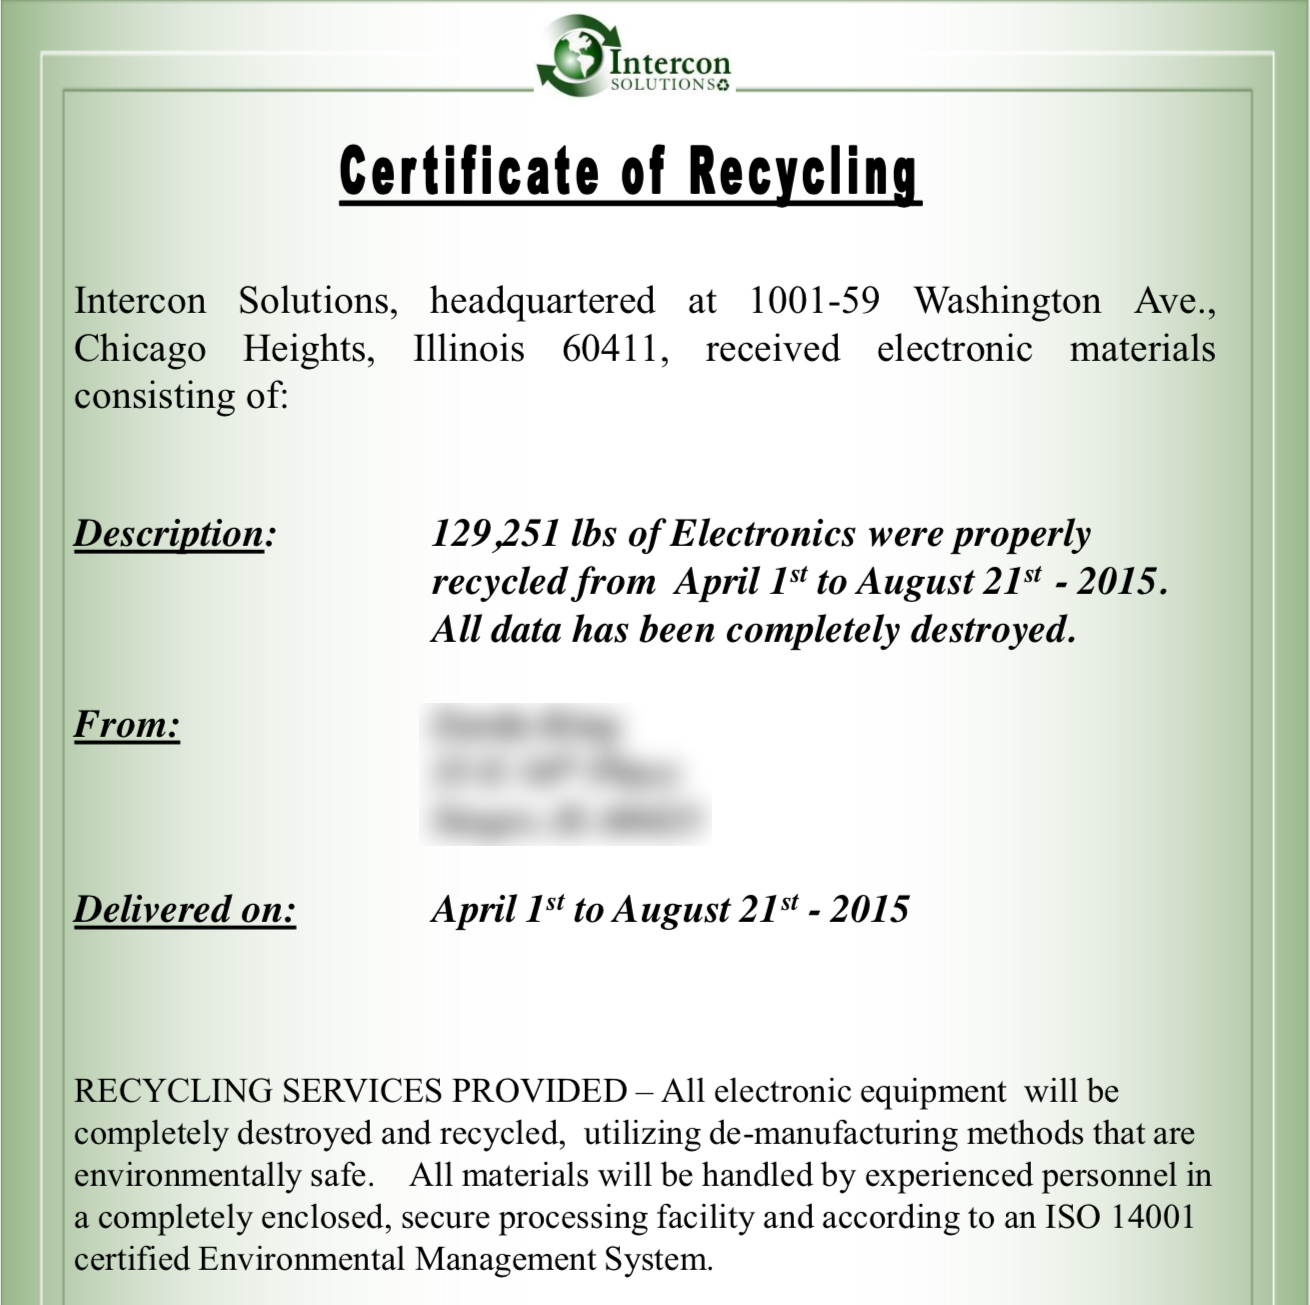 This is a picture of a certificate of recycling Intercon Solutions would send its customers.